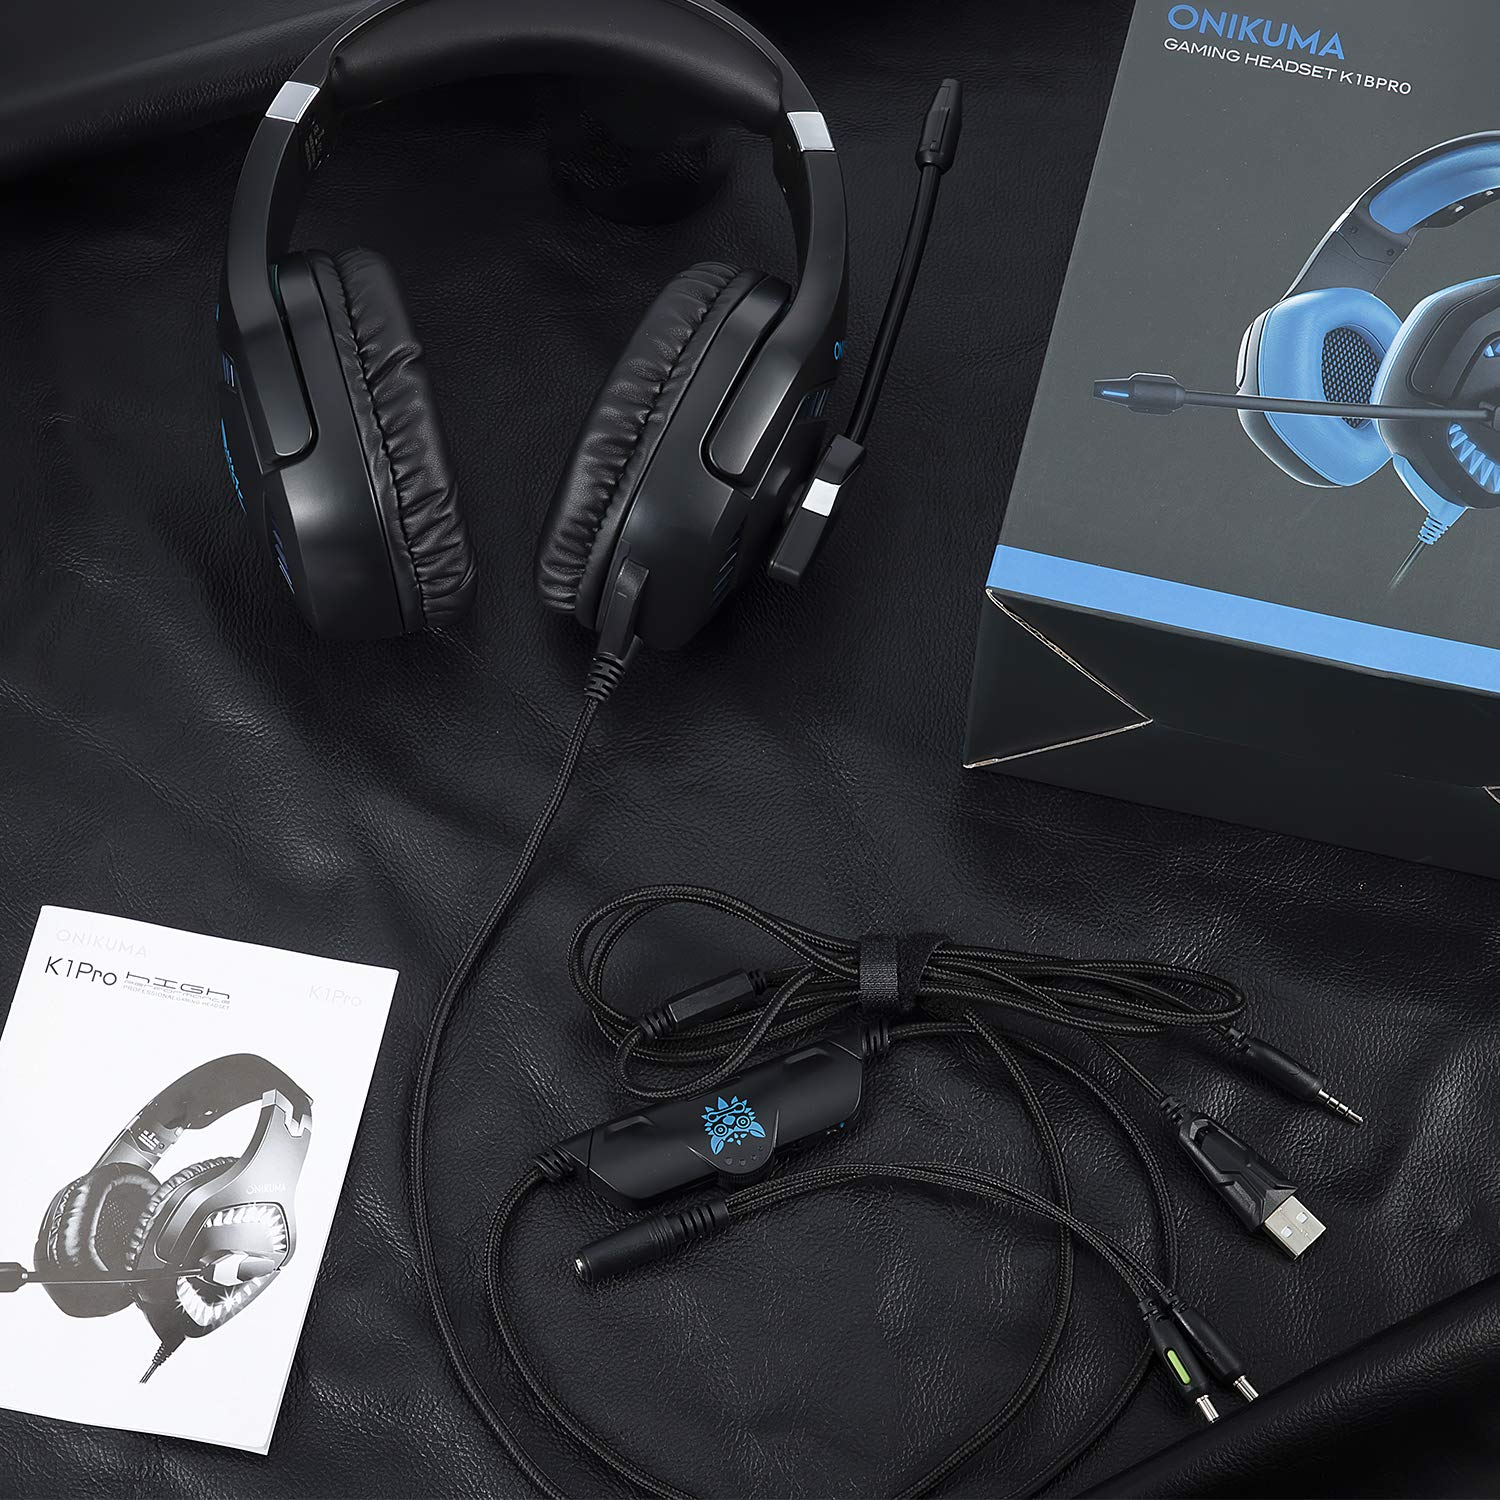 Gaming Headset, E-BLUE EHS956 Over Ear Headphones with Mic and Volume Control Stereo for PS4 and Xbox One( No adapter included)